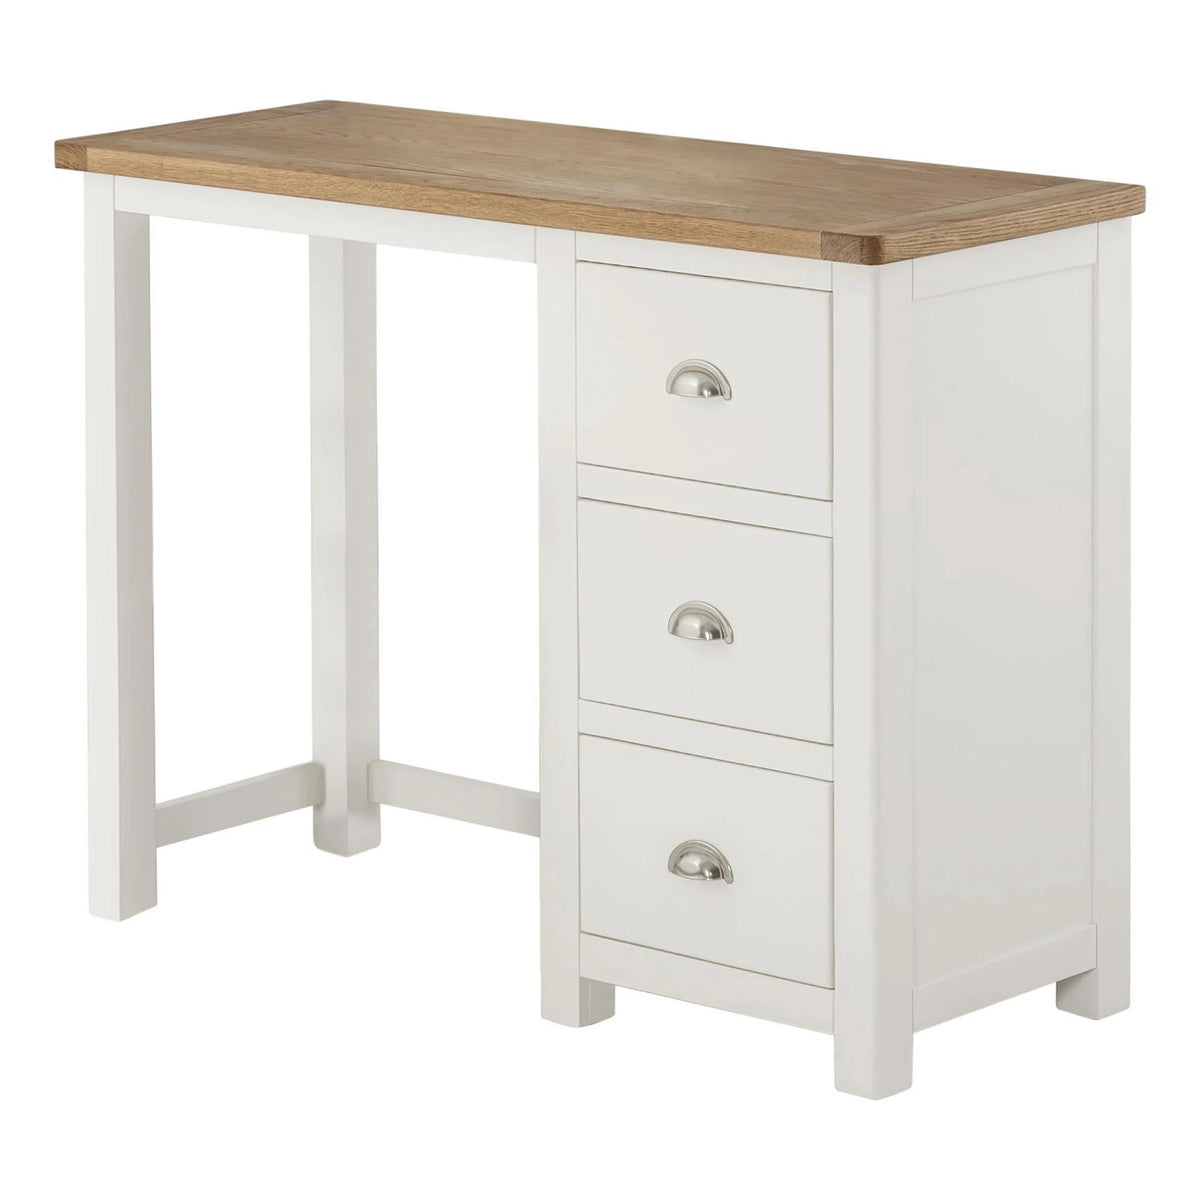 The Padstow White Small Wooden Dressing Table